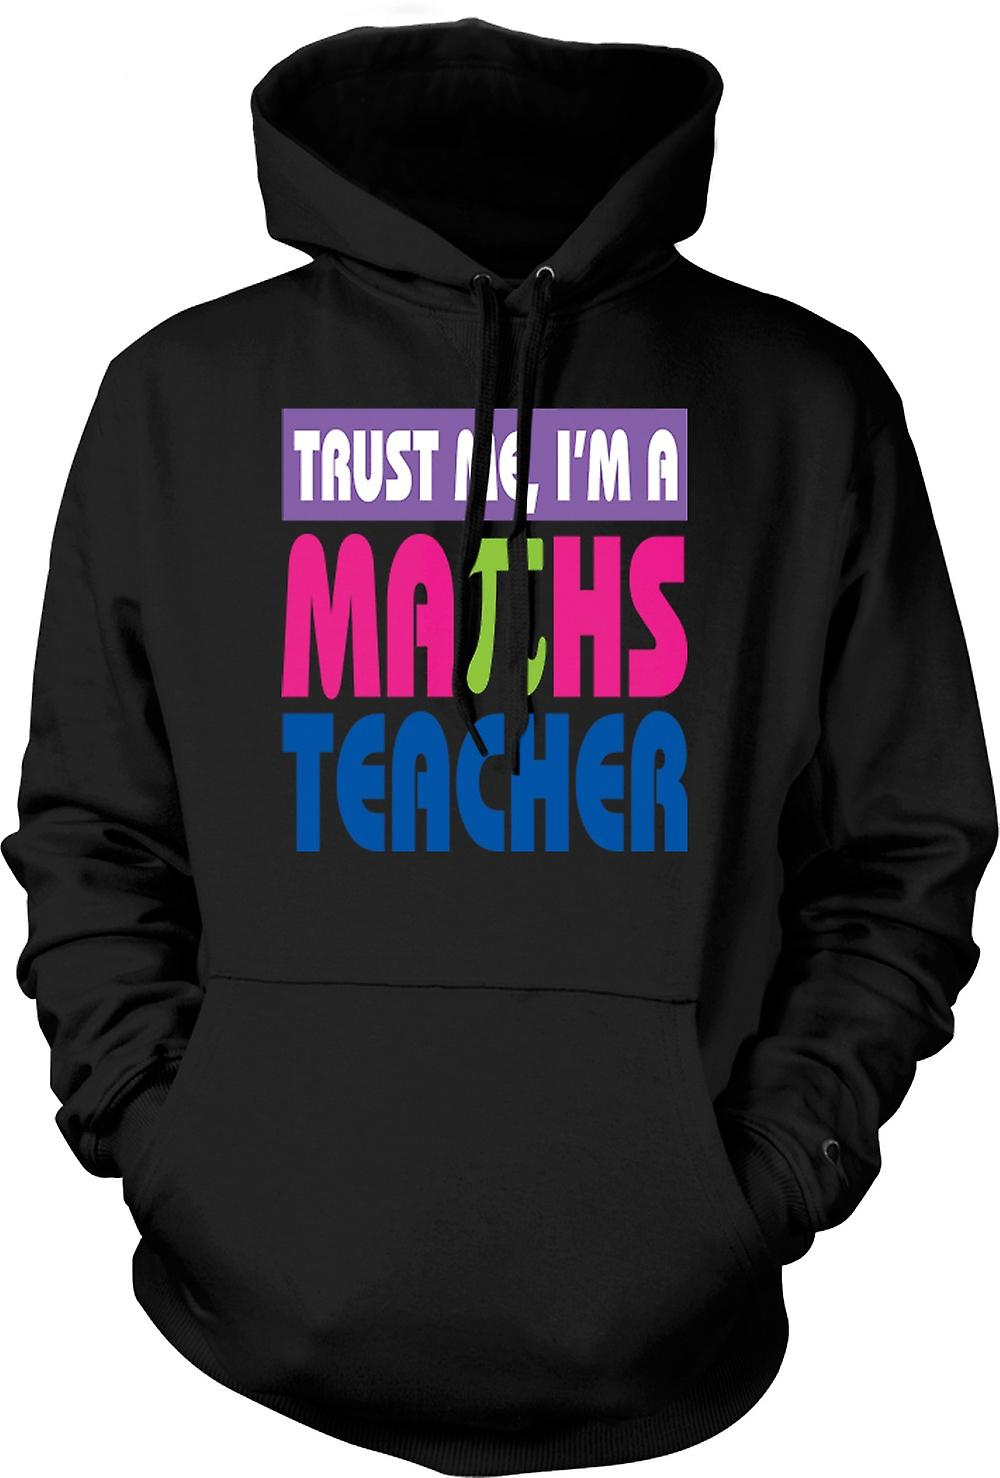 Kids Hoodie - Trust Me I'm A Maths Teacher - Funny